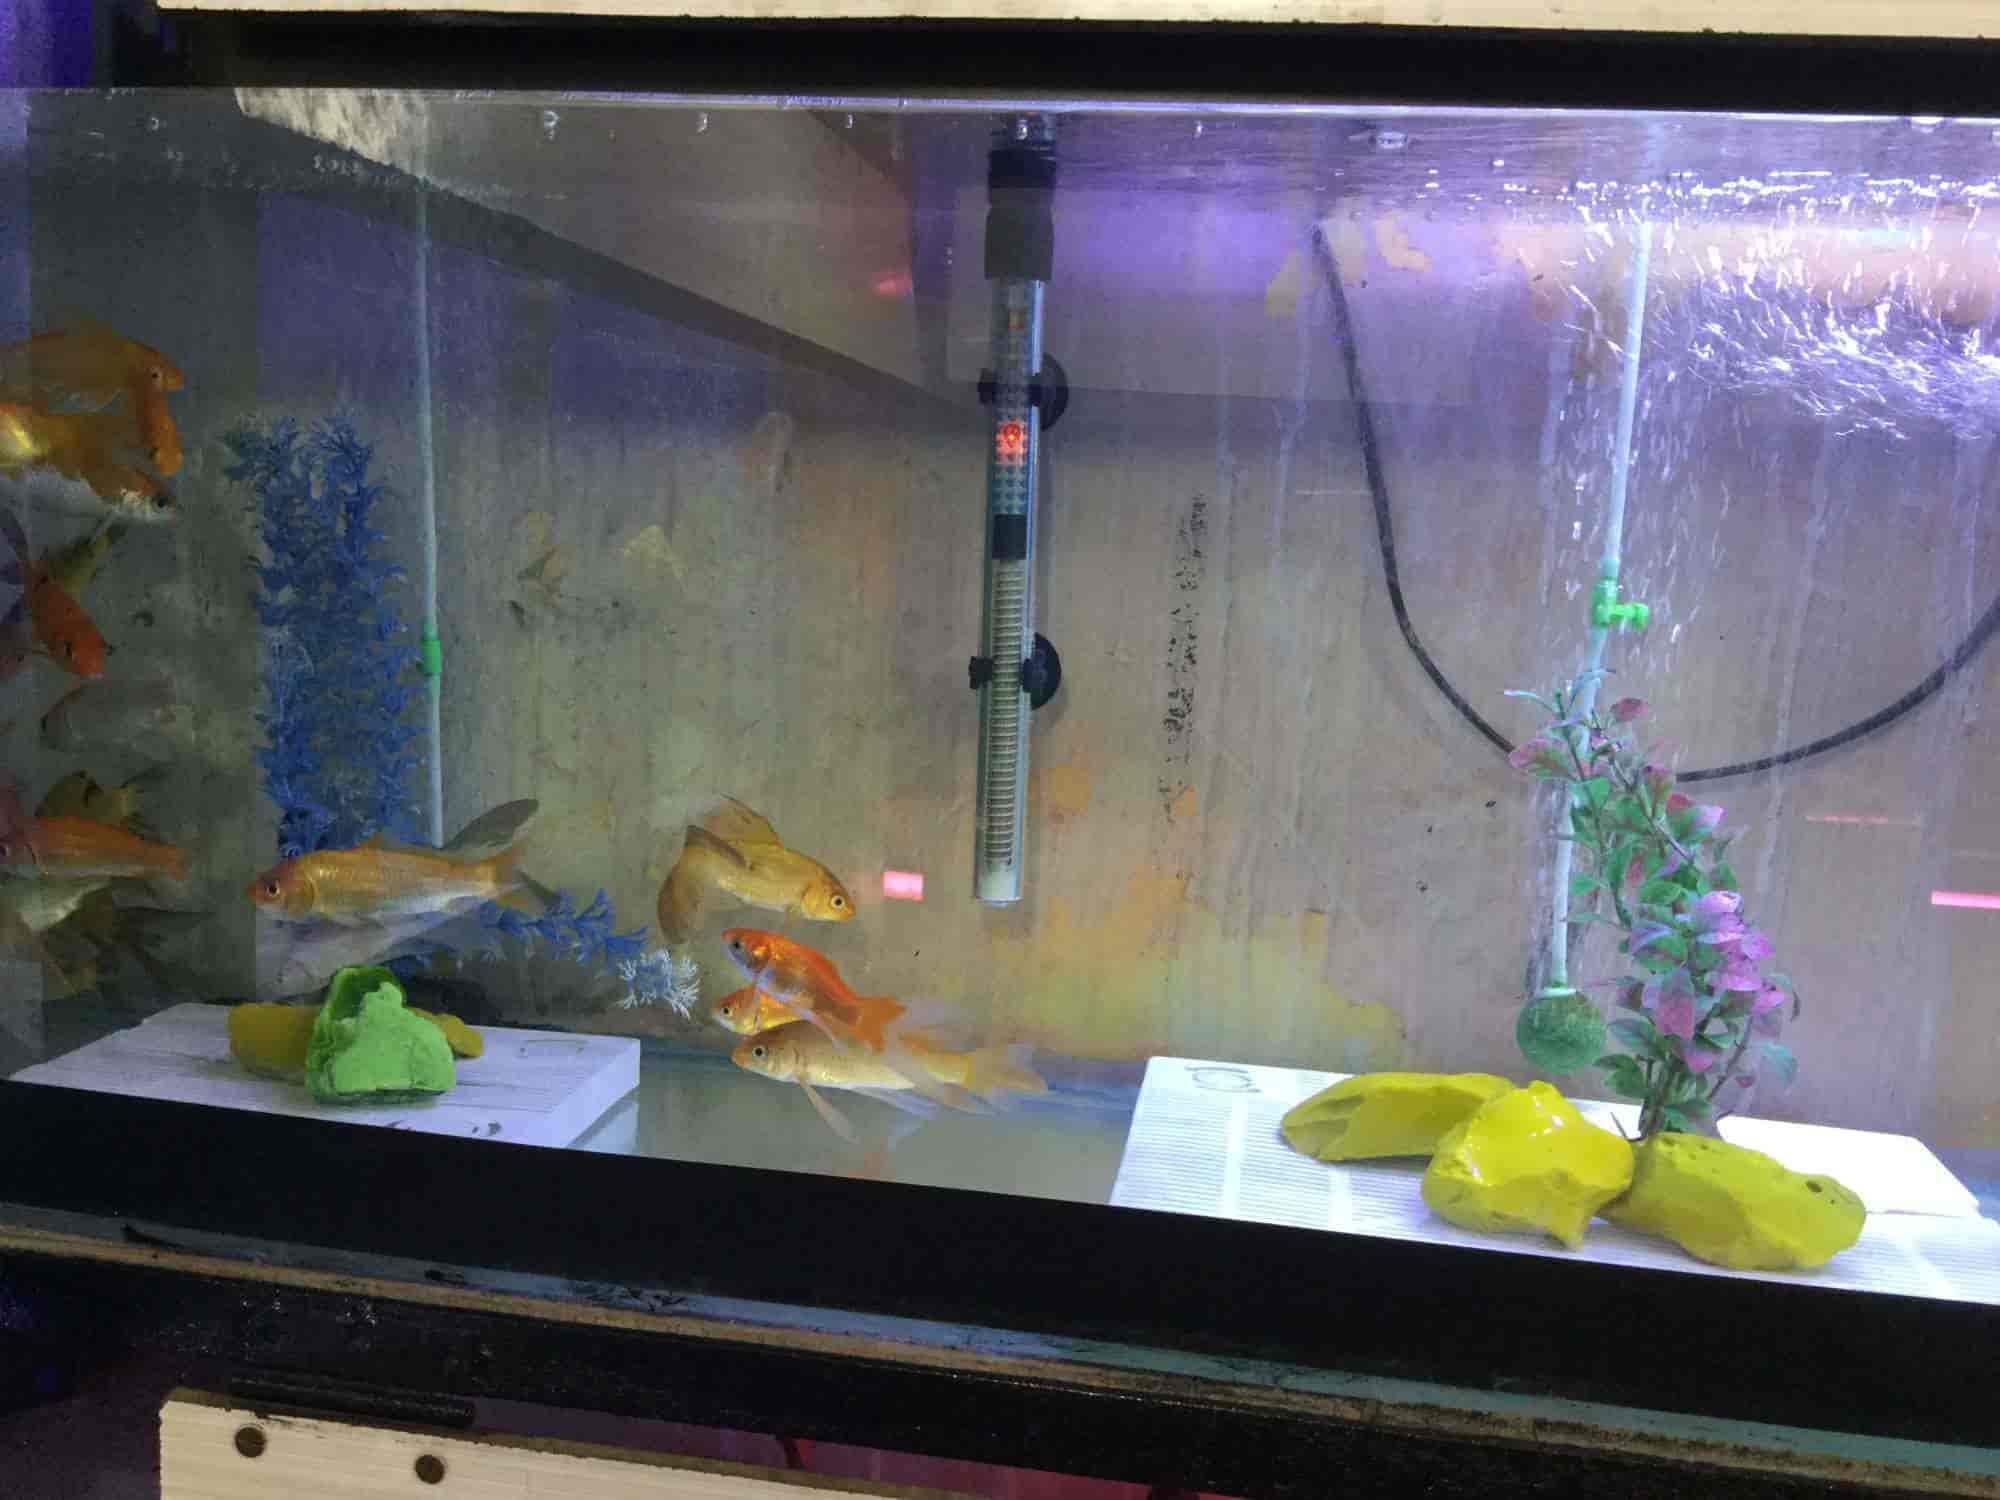 Fish Home Aquarium Kamal Chowk Pet Shops in Nagpur Justdial